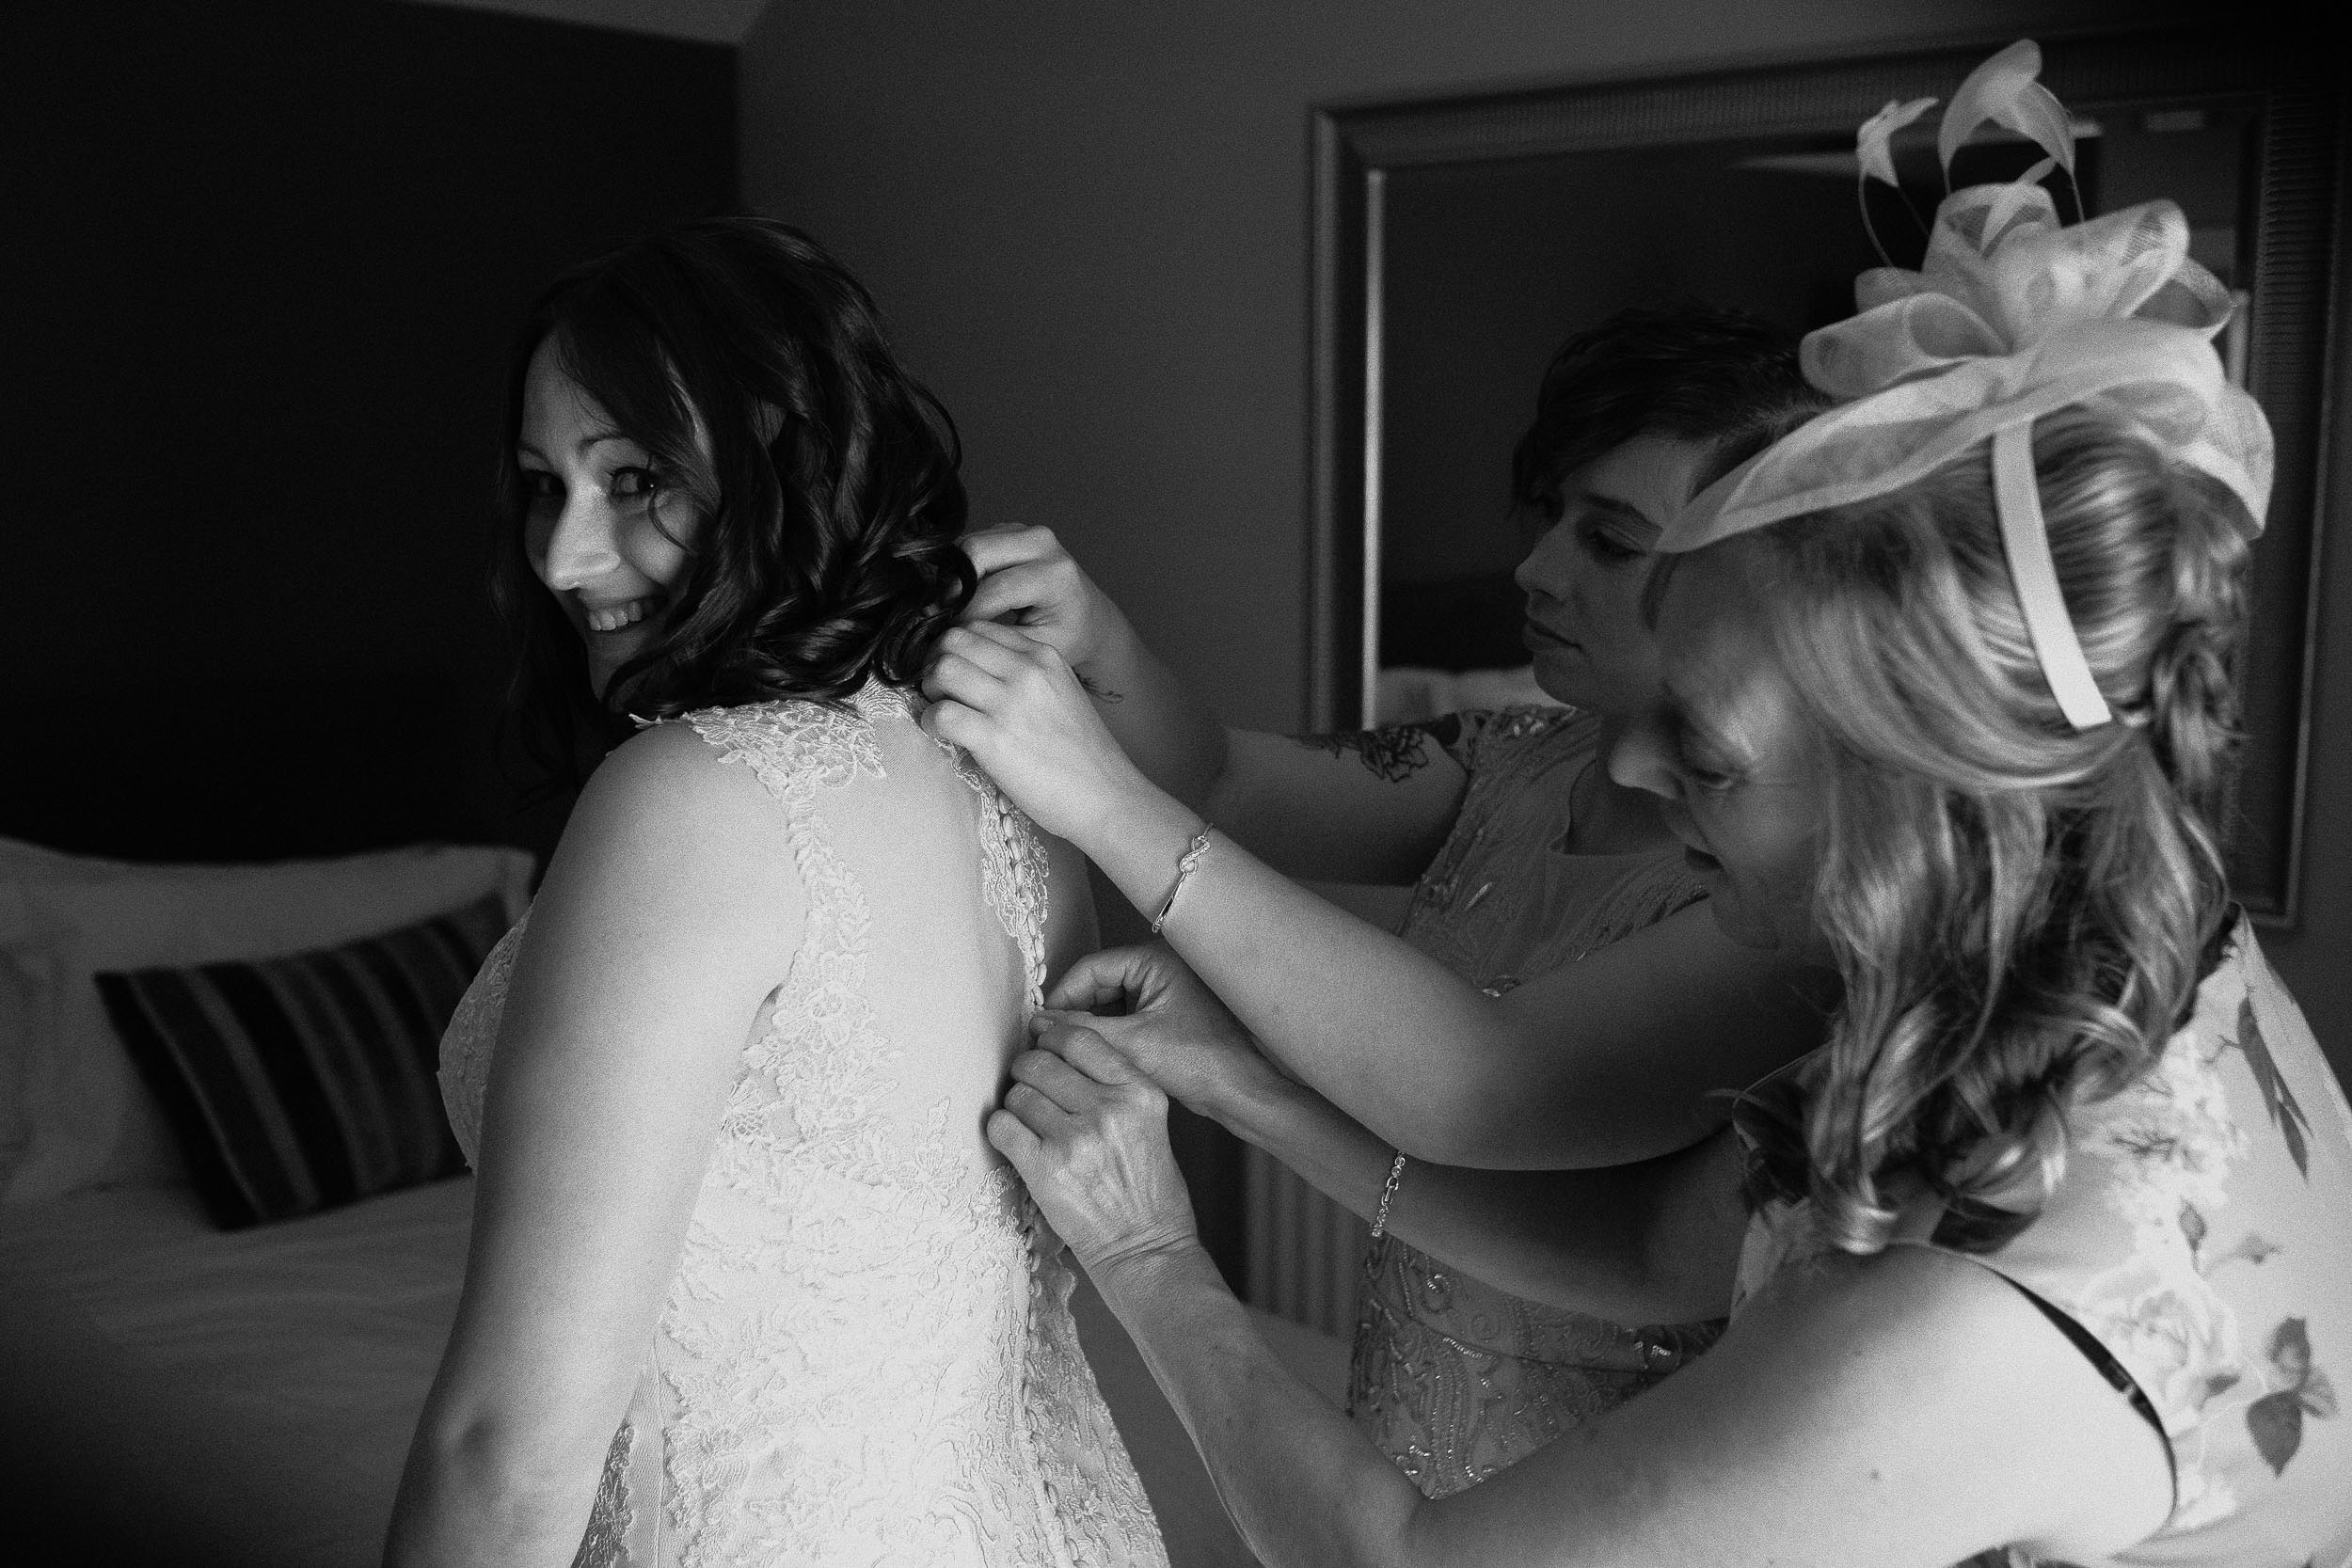 Black and white photo of bridesmaids tying brides dress